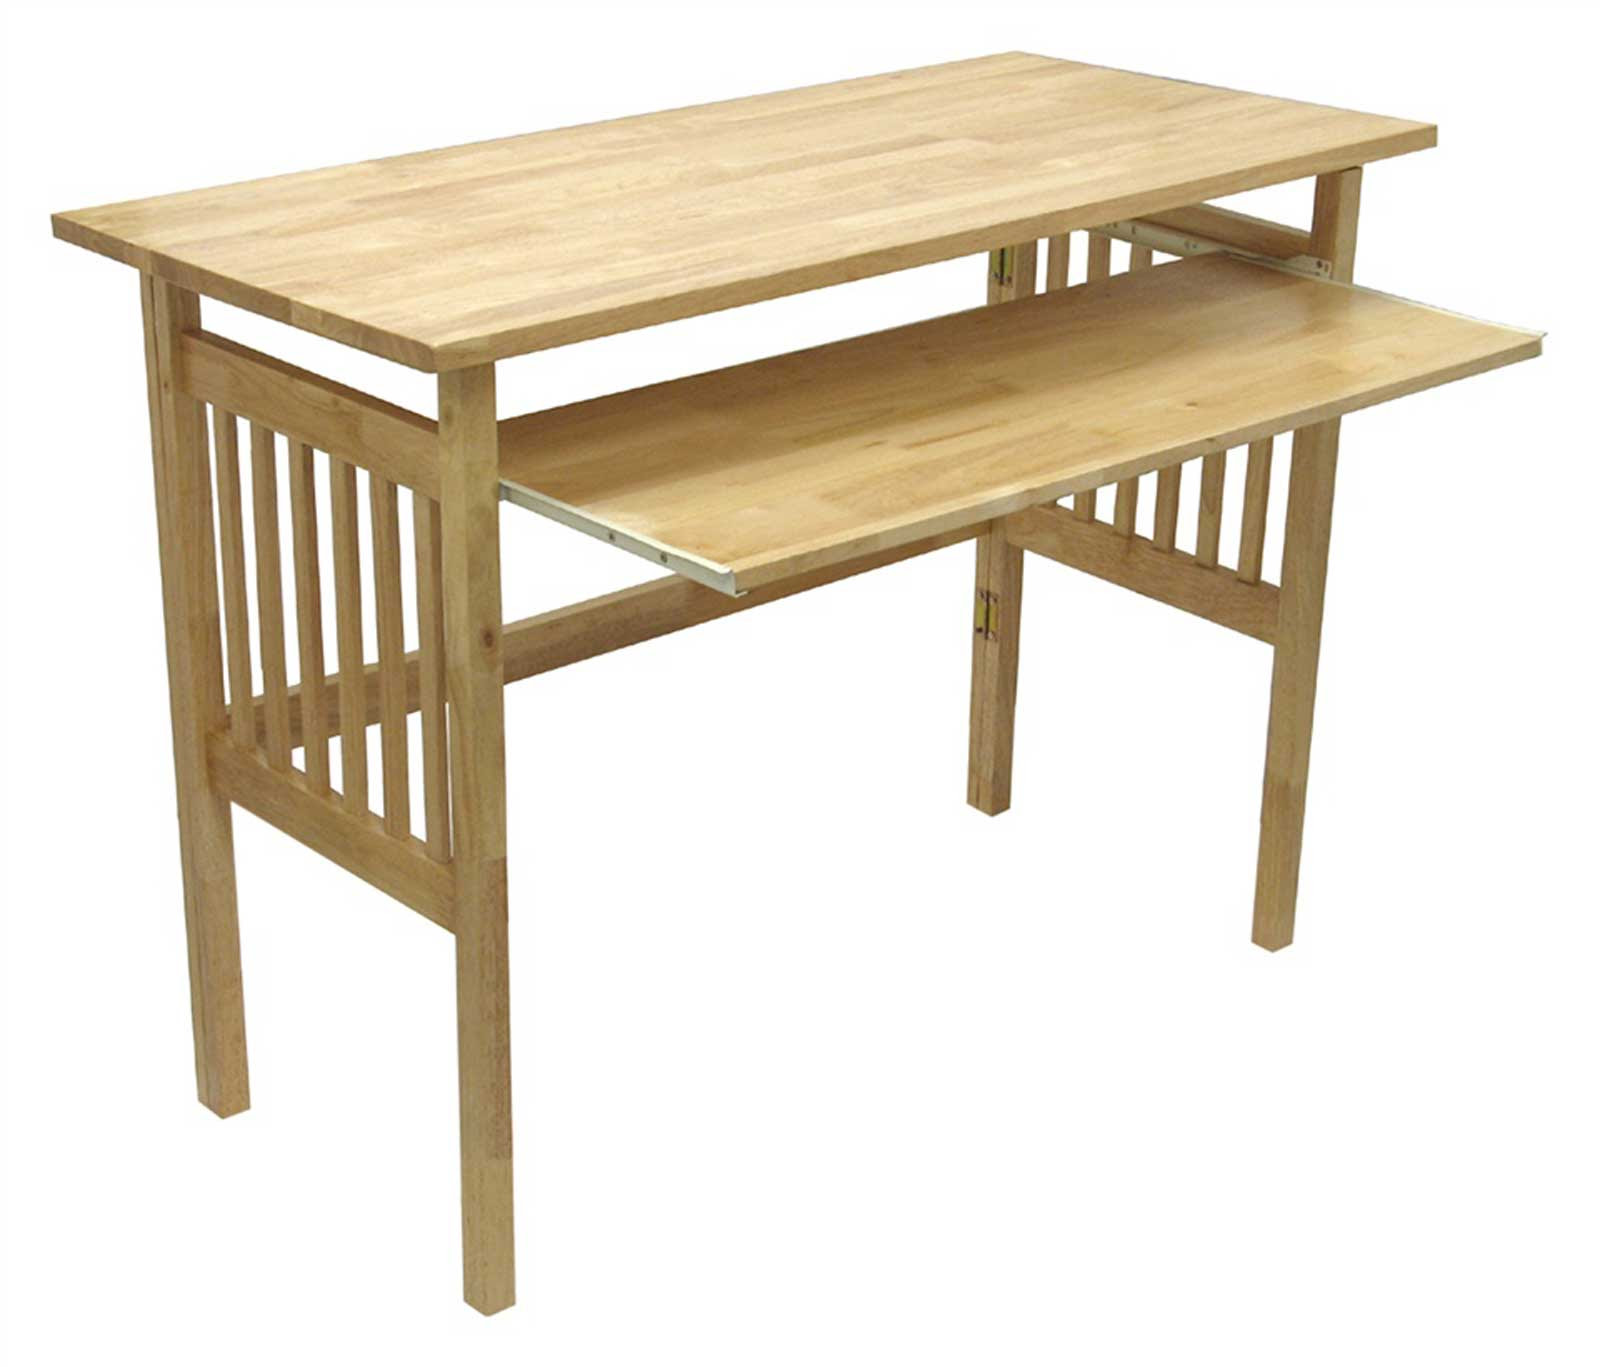 Woodworking Plans Folding Table For Laptop Easy